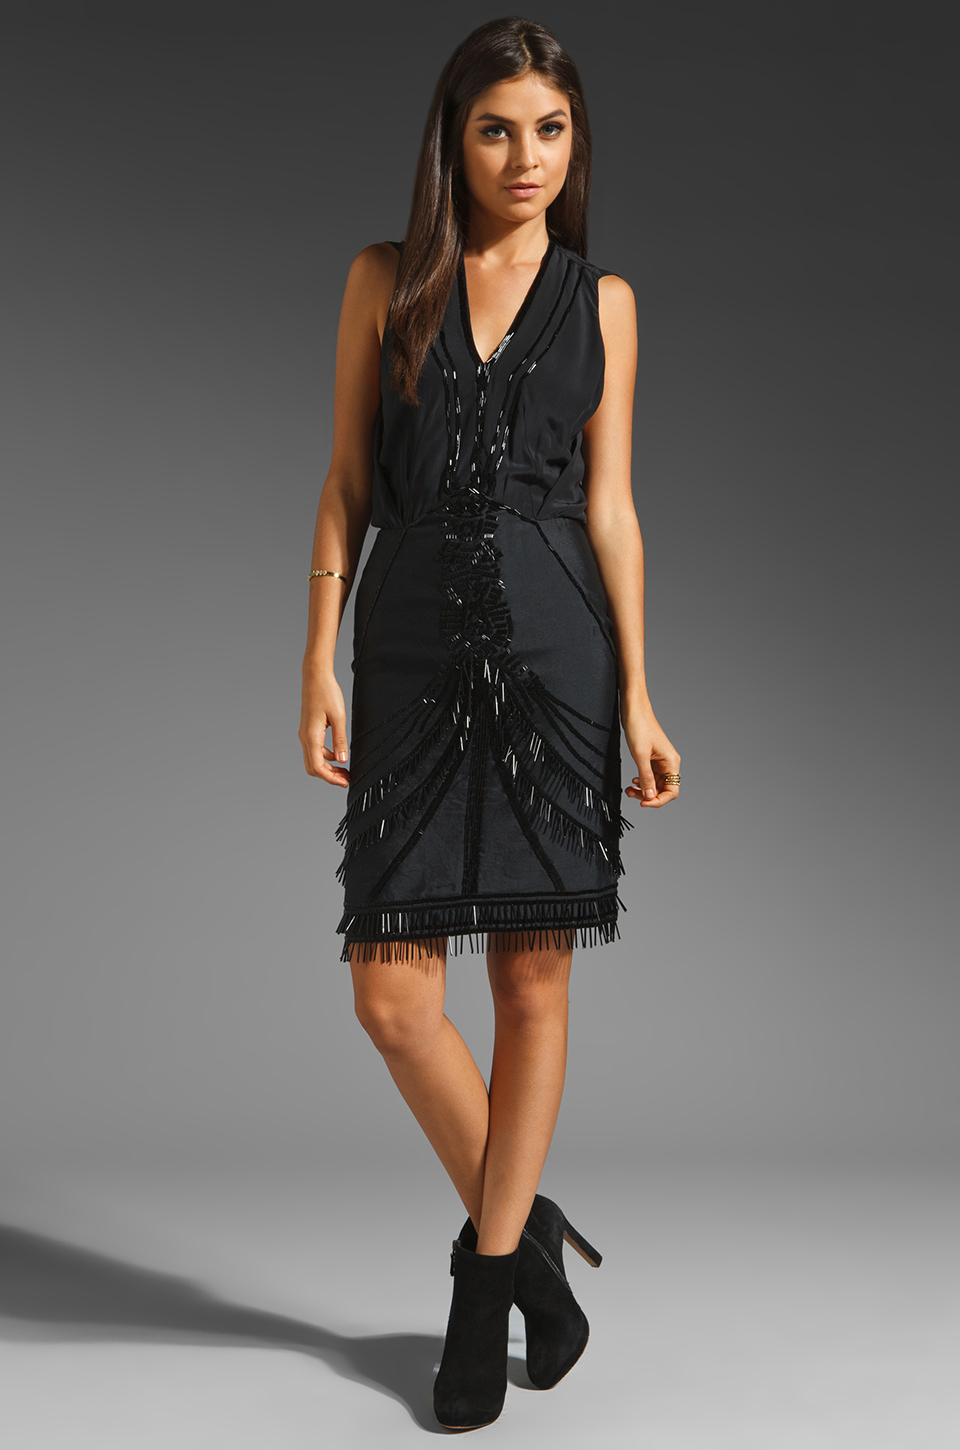 Antik Batik Koco Sleeveless Dress in Black